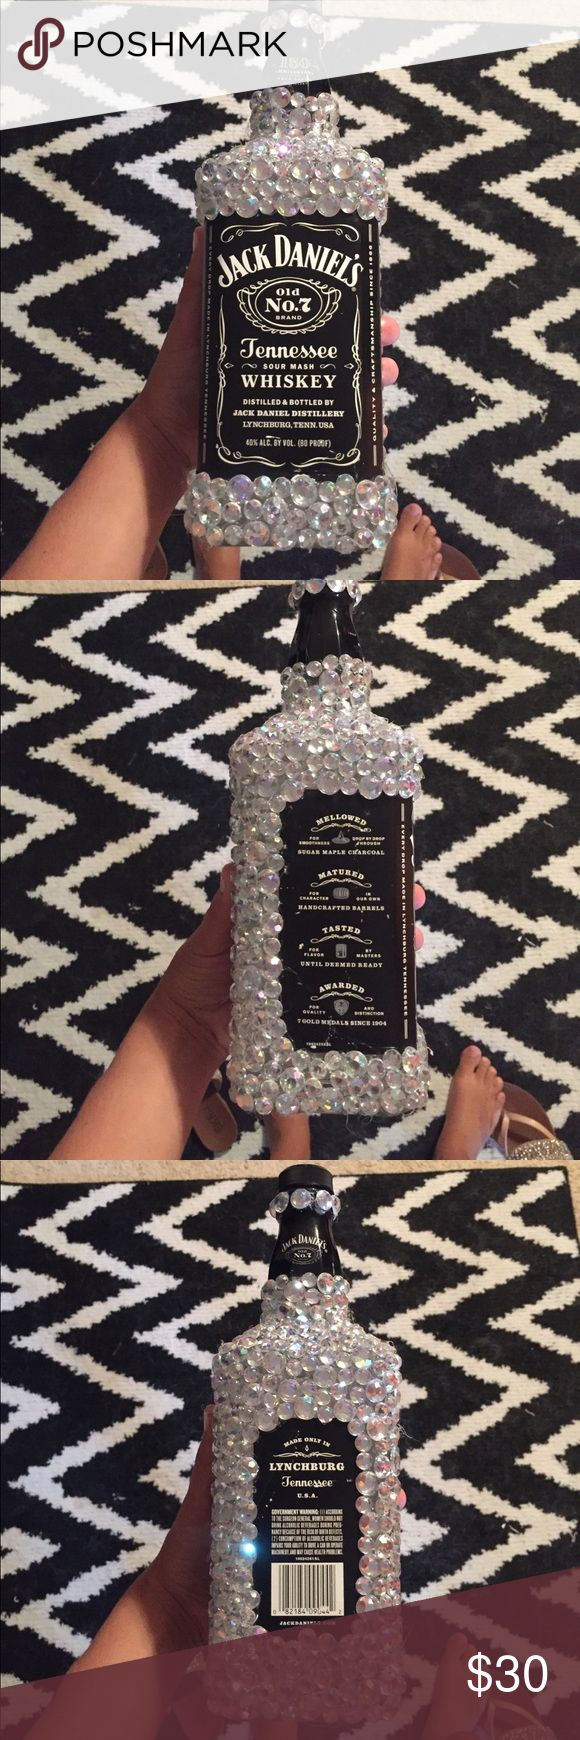 Selling this Jack Daniels Soap Dispenser on Poshmark! My username is: taybaby12. #shopmycloset #poshmark #fashion #shopping #style #forsale #Other